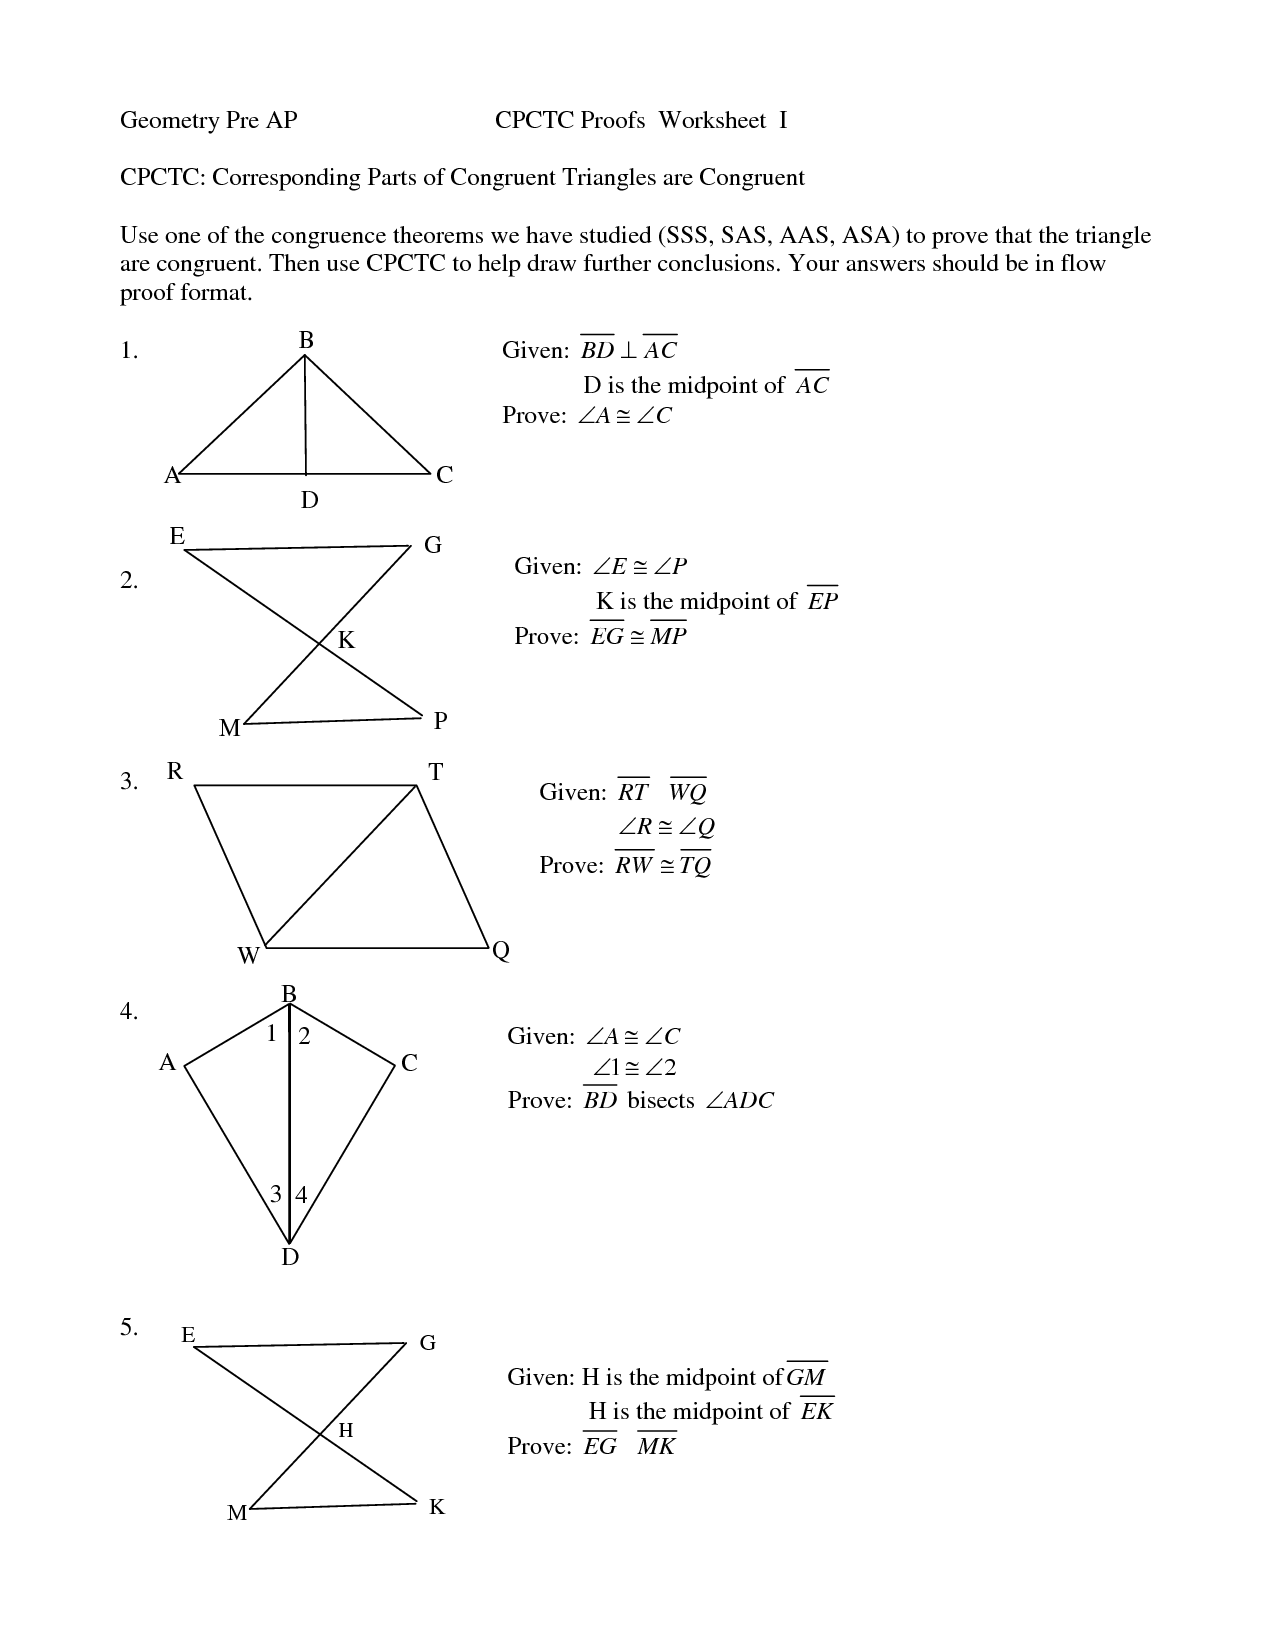 Basic Geometry Proofs Worksheet   Printable Worksheets and Activities for  Teachers [ 1650 x 1275 Pixel ]